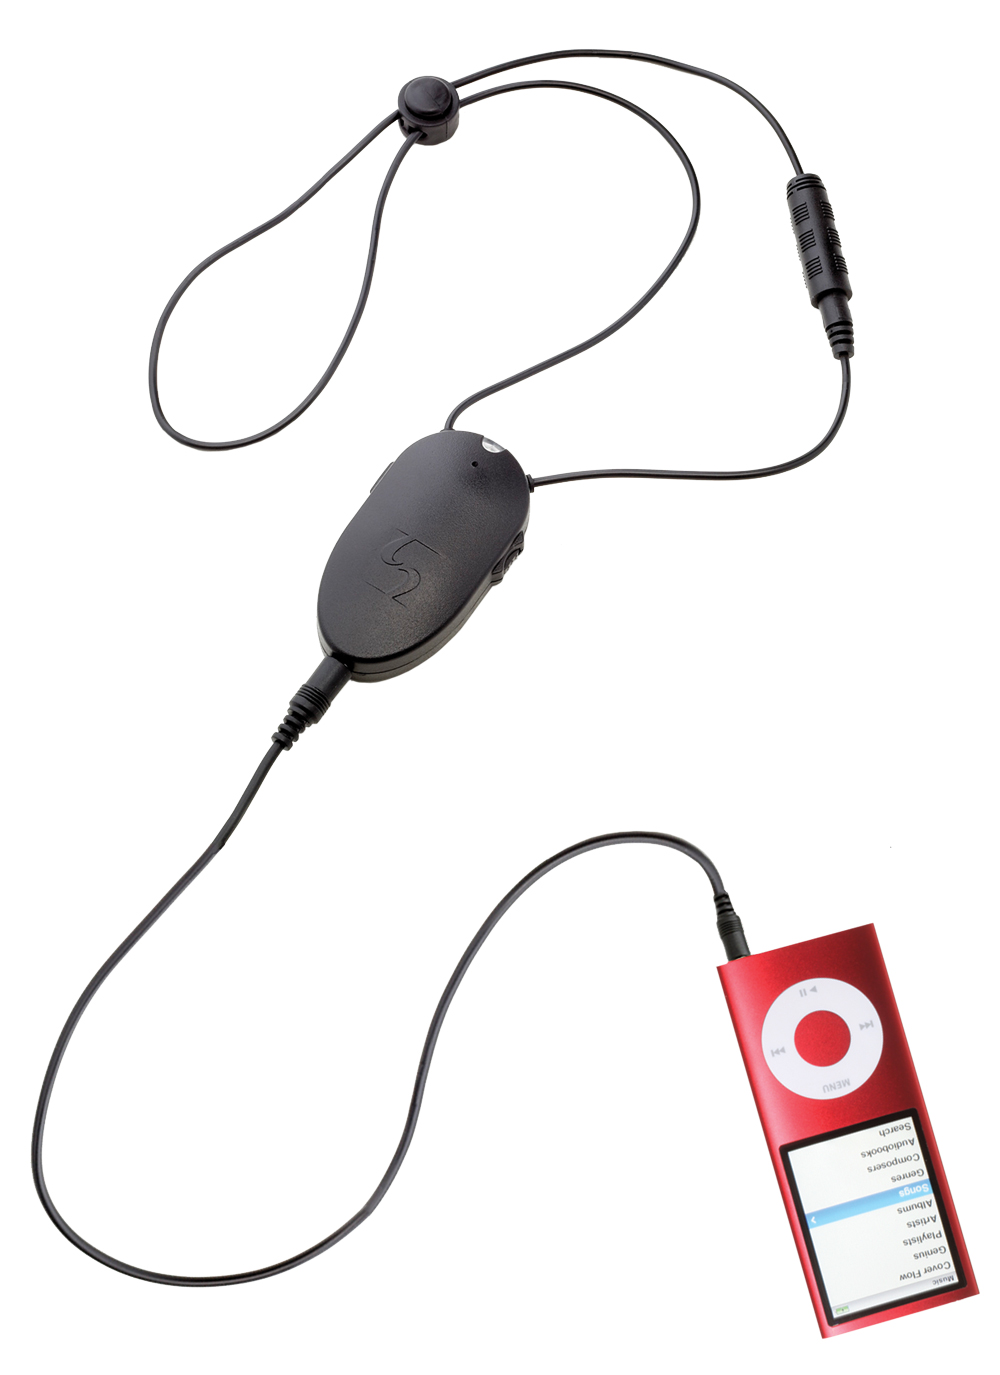 All About Assistive Listening Devices for Cochlear Implants